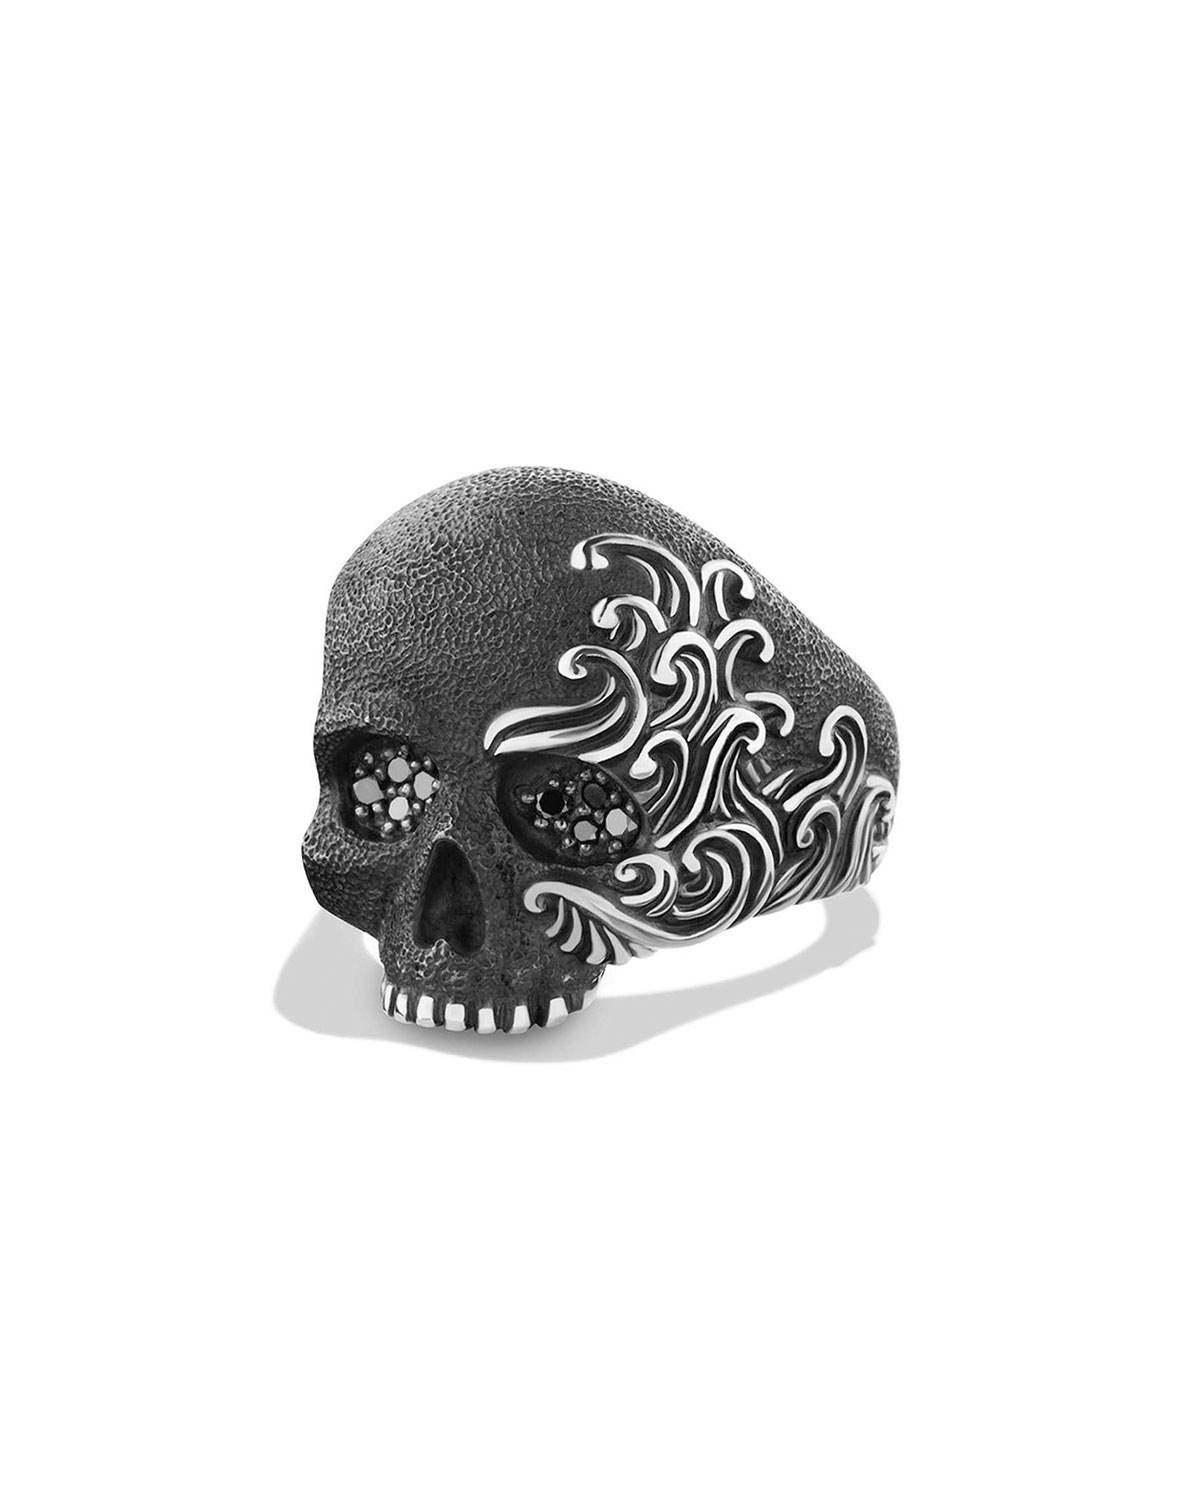 David Yurman Waves Large Skull Ring with Gold